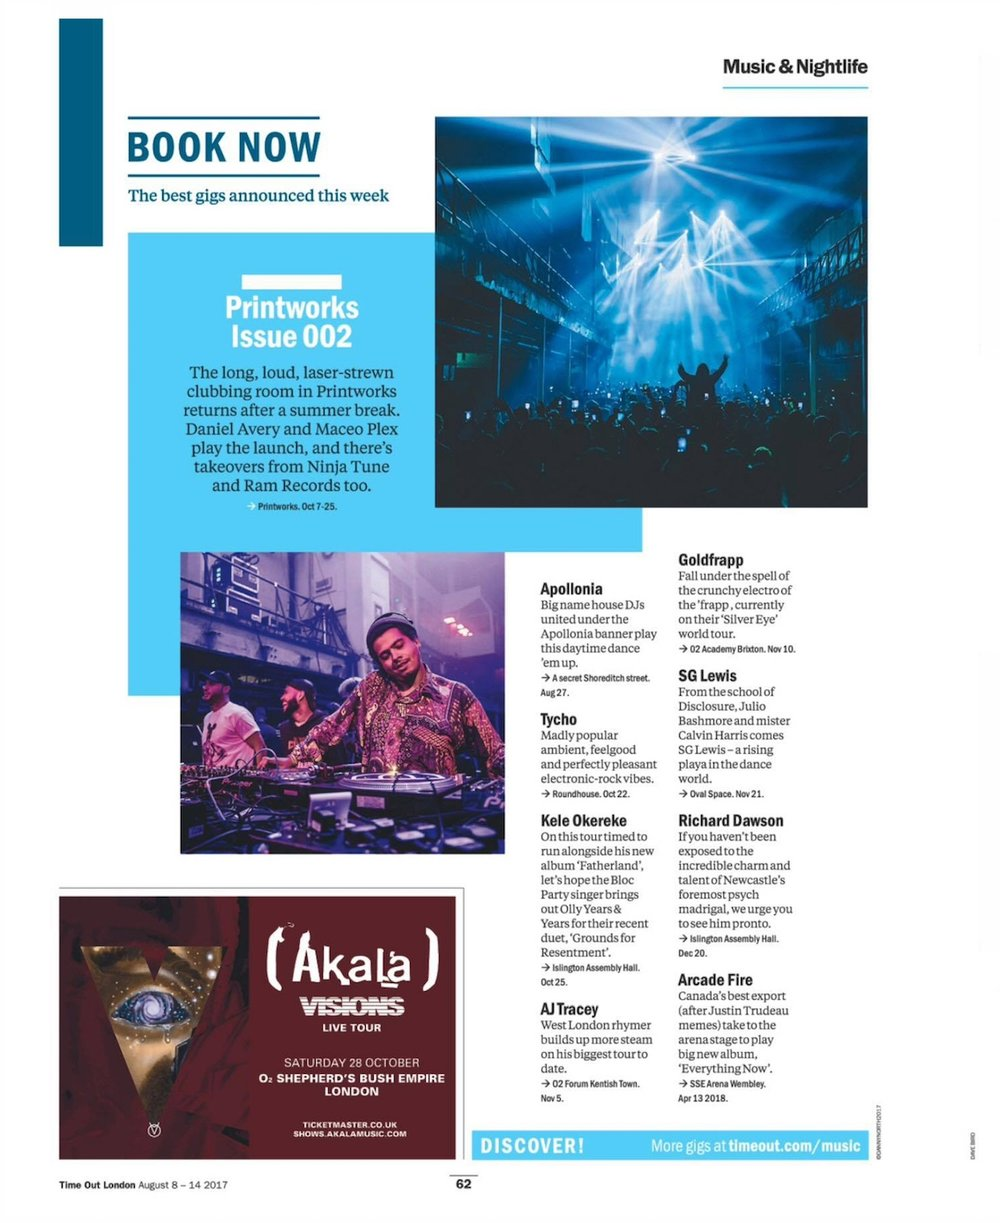 region-specific press coverage - timeout london event listing: apollonia @ unleash